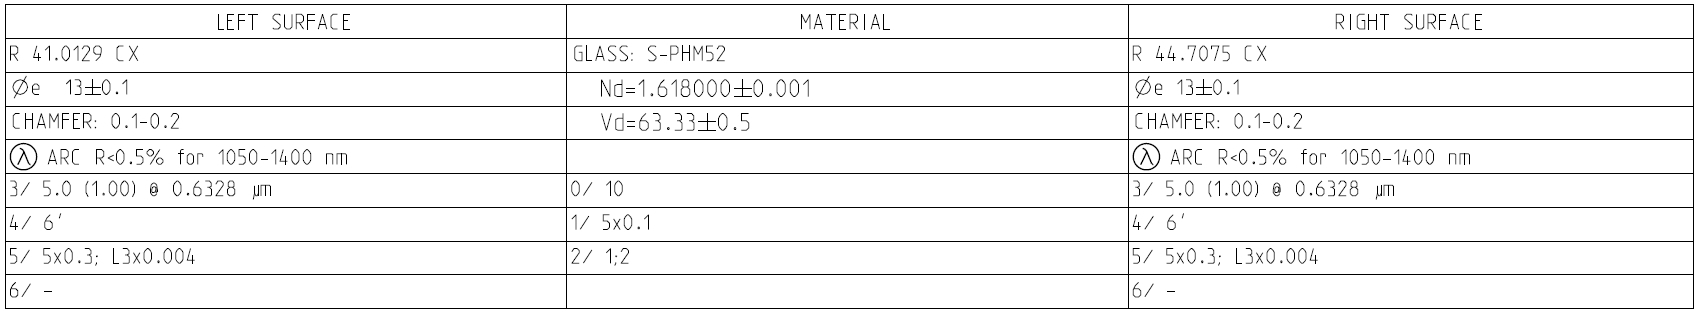 Table of parameters has a  requirements for the surface column and a requirements for the optical element material column